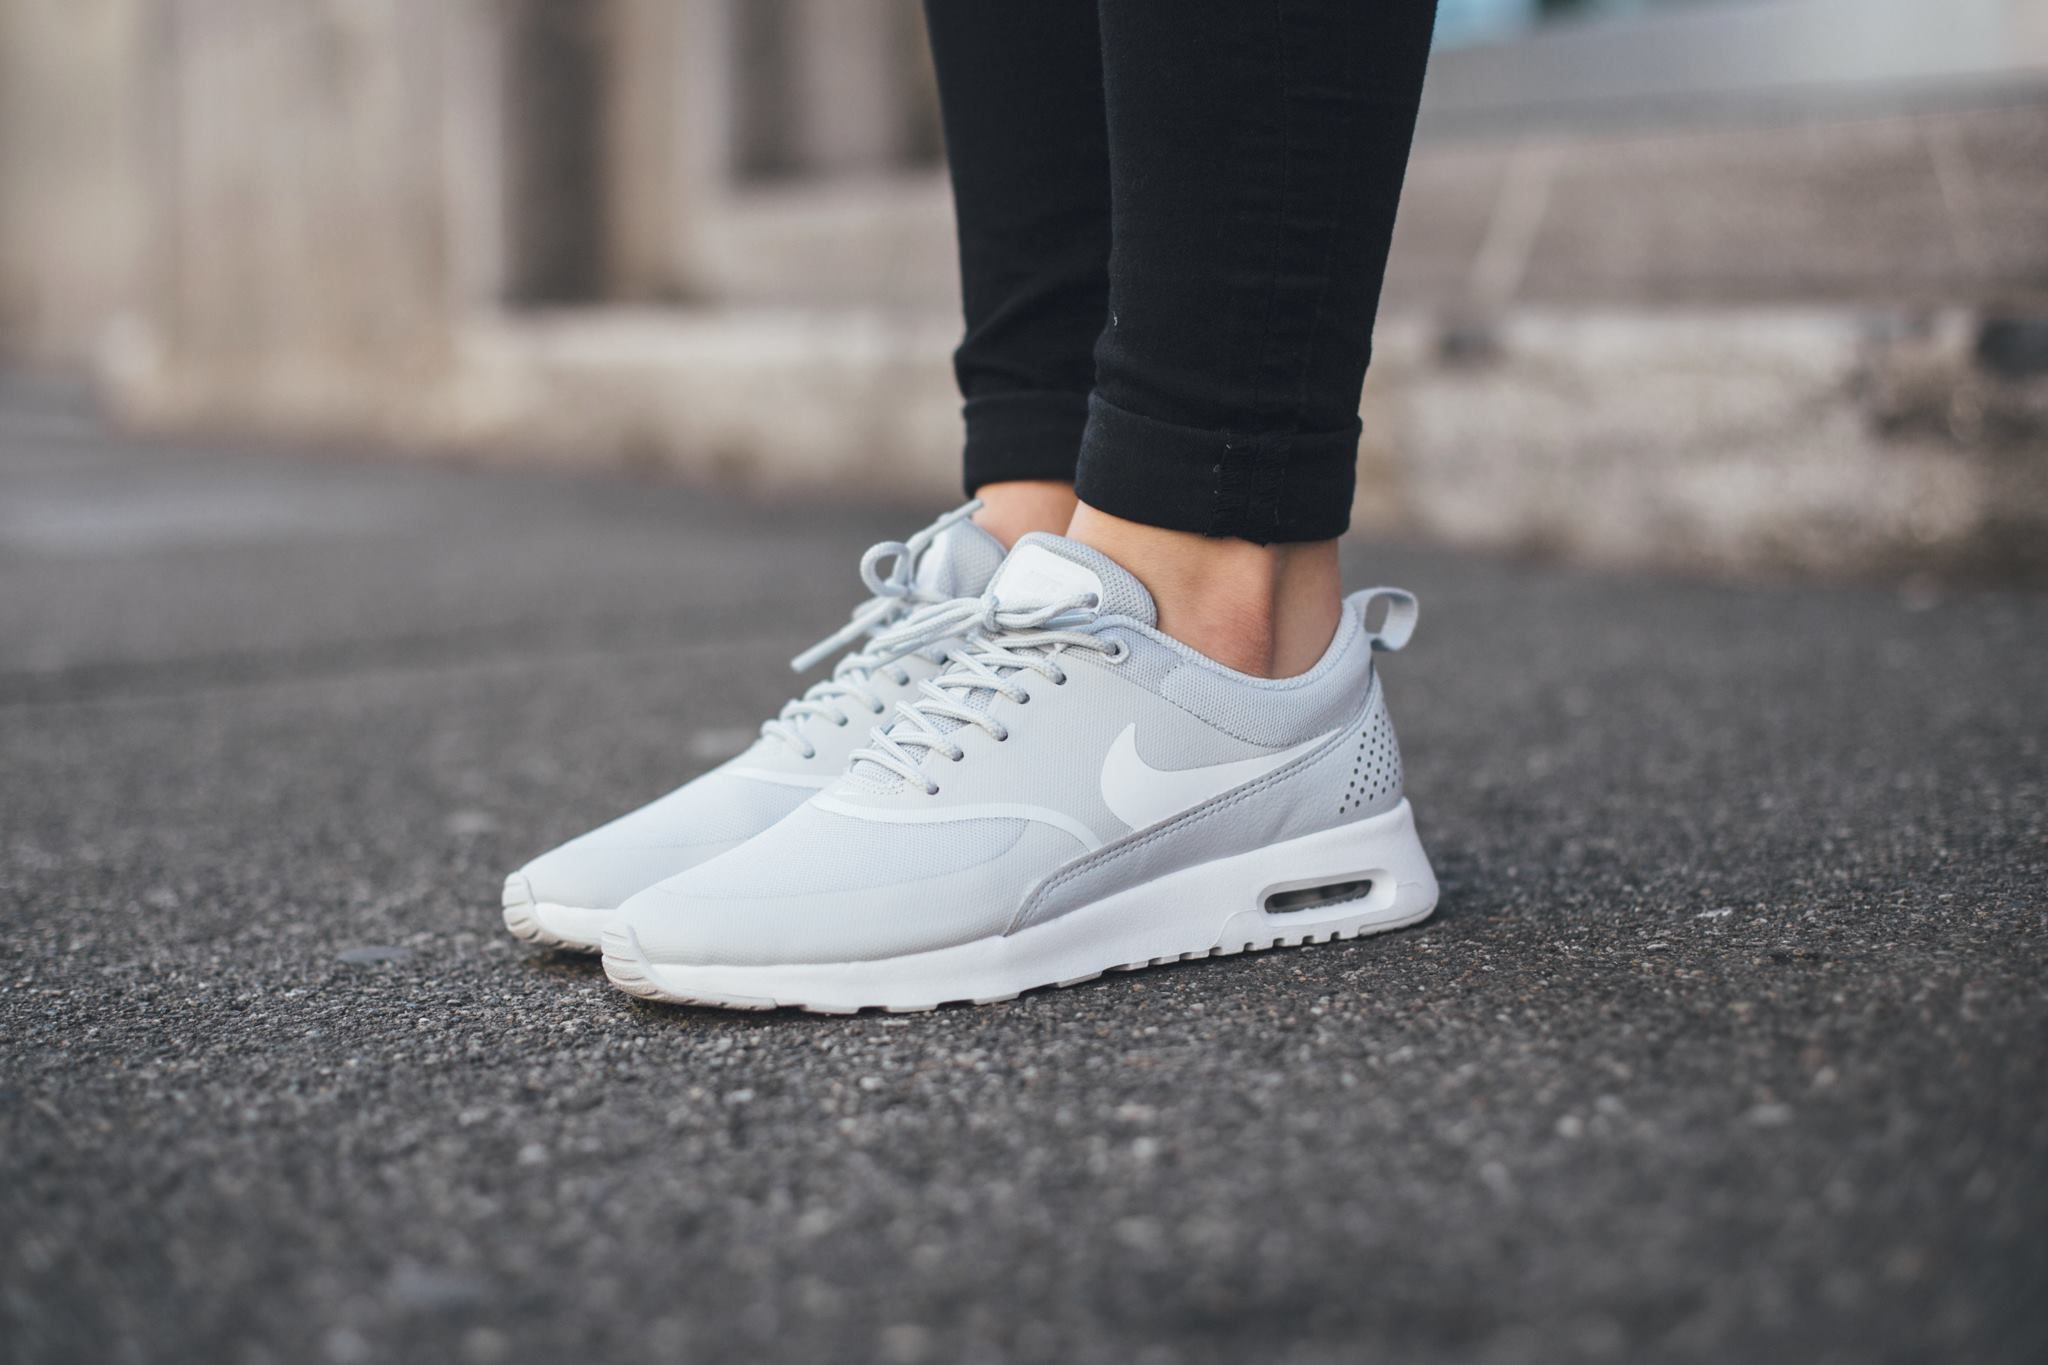 nike air max thea premium stealth platinum white highlights